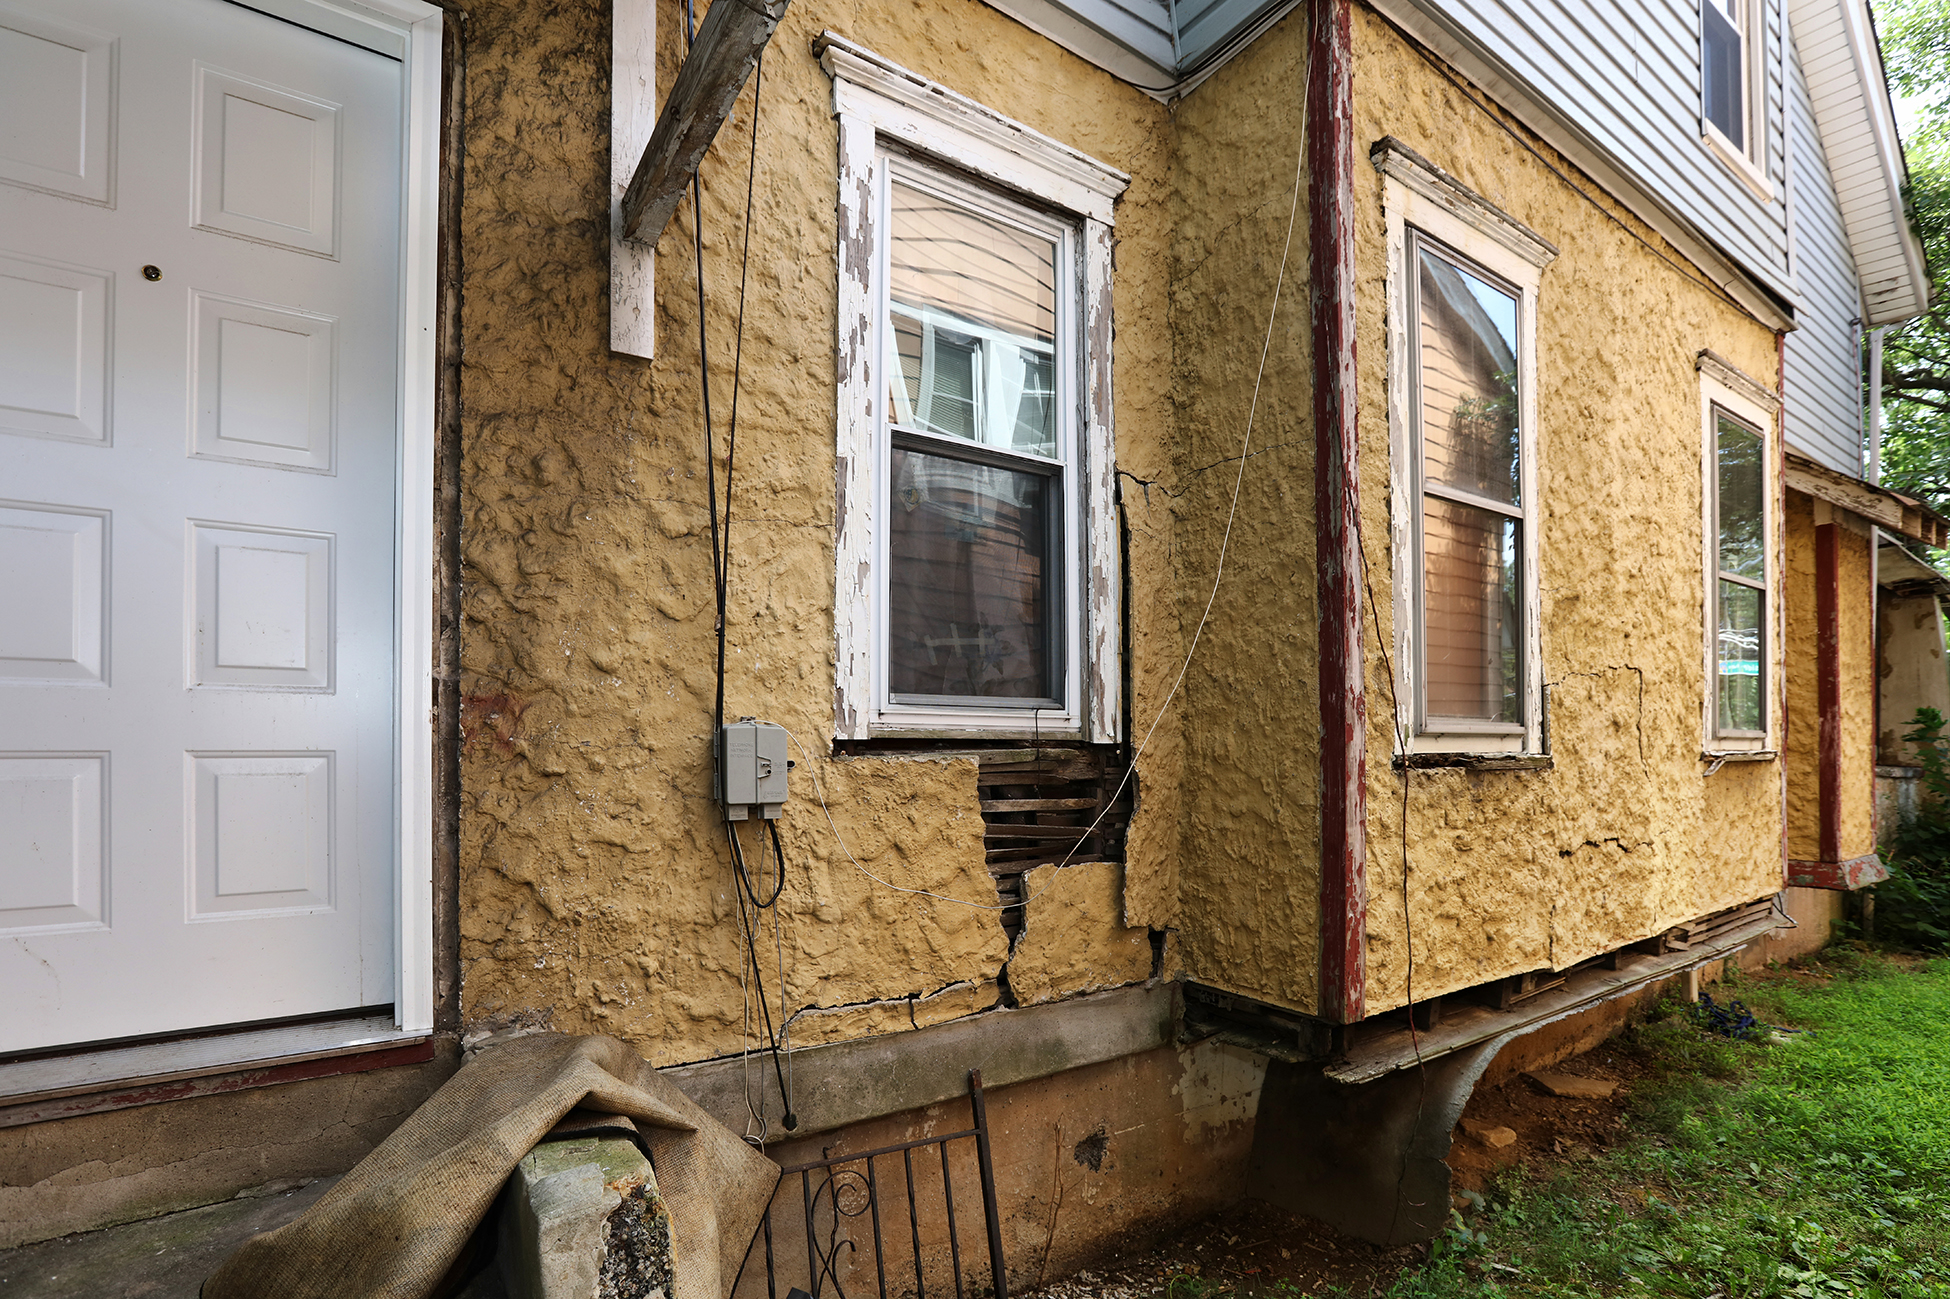 Additional photo for property listing at Opportunity Knocks at Well-Priced Ewing Township Property 1410 Pennington Road Trenton, New Jersey 08618 États-Unis